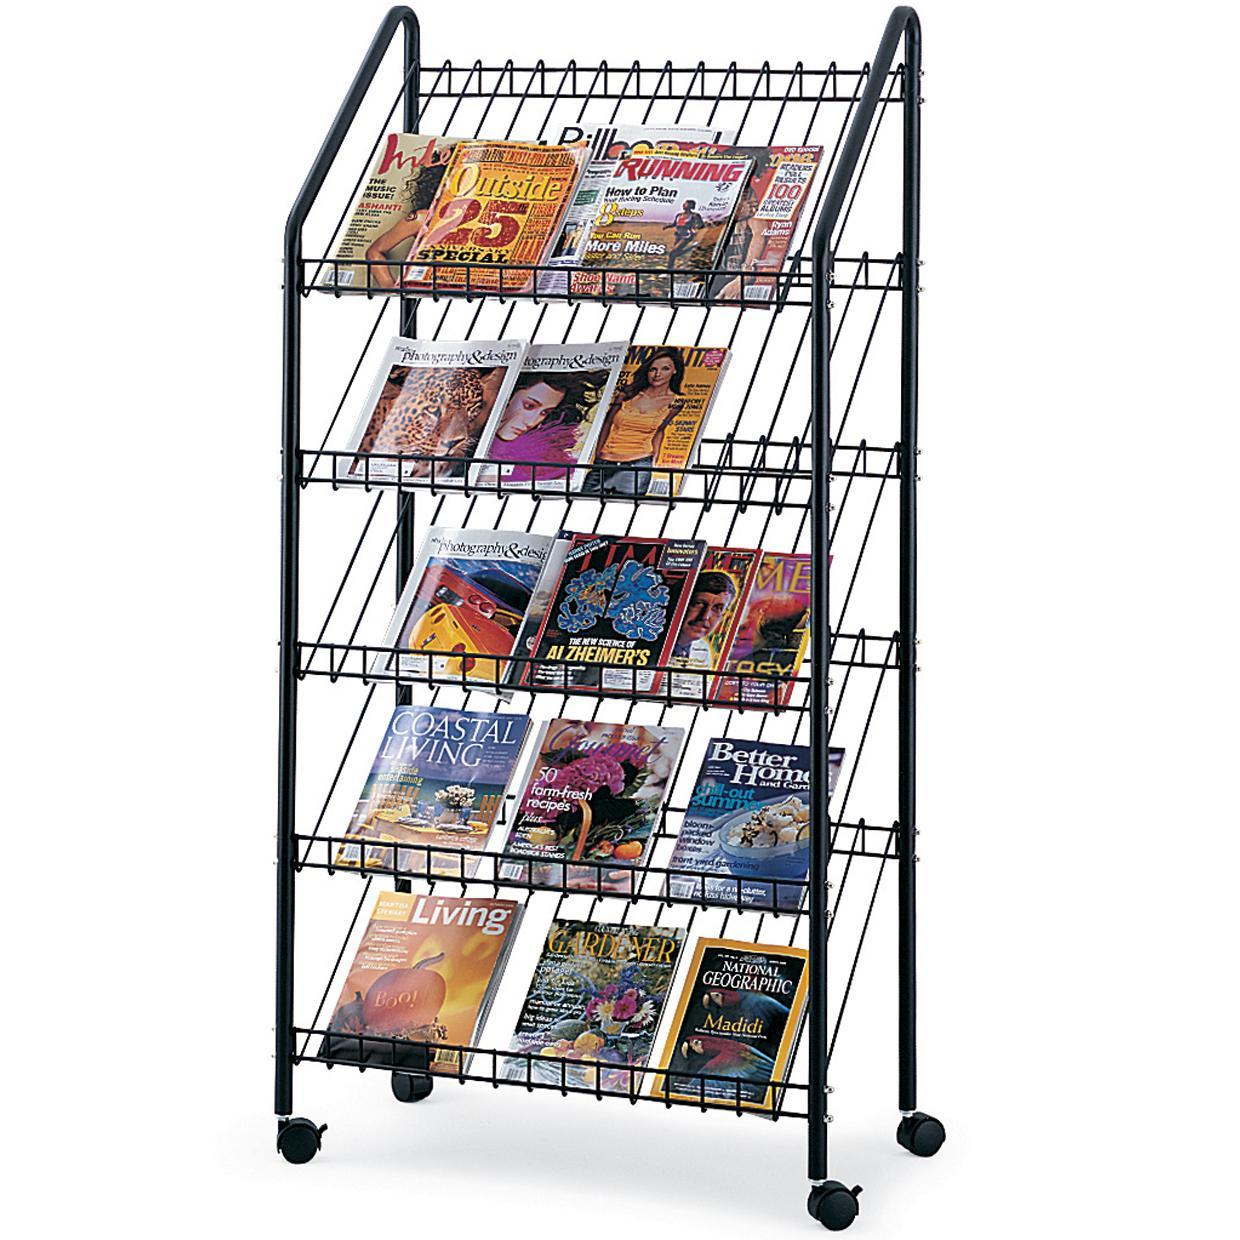 holder lulusoso floor literature nail desk tilted tiltedacrylicpipetterack wall rack brochure magazine inc plexiglass polish racks home frag perspe stand tract pipette acrylic com perspex full cd display marketlab for mounted zoom wine shelves clear towel rotating